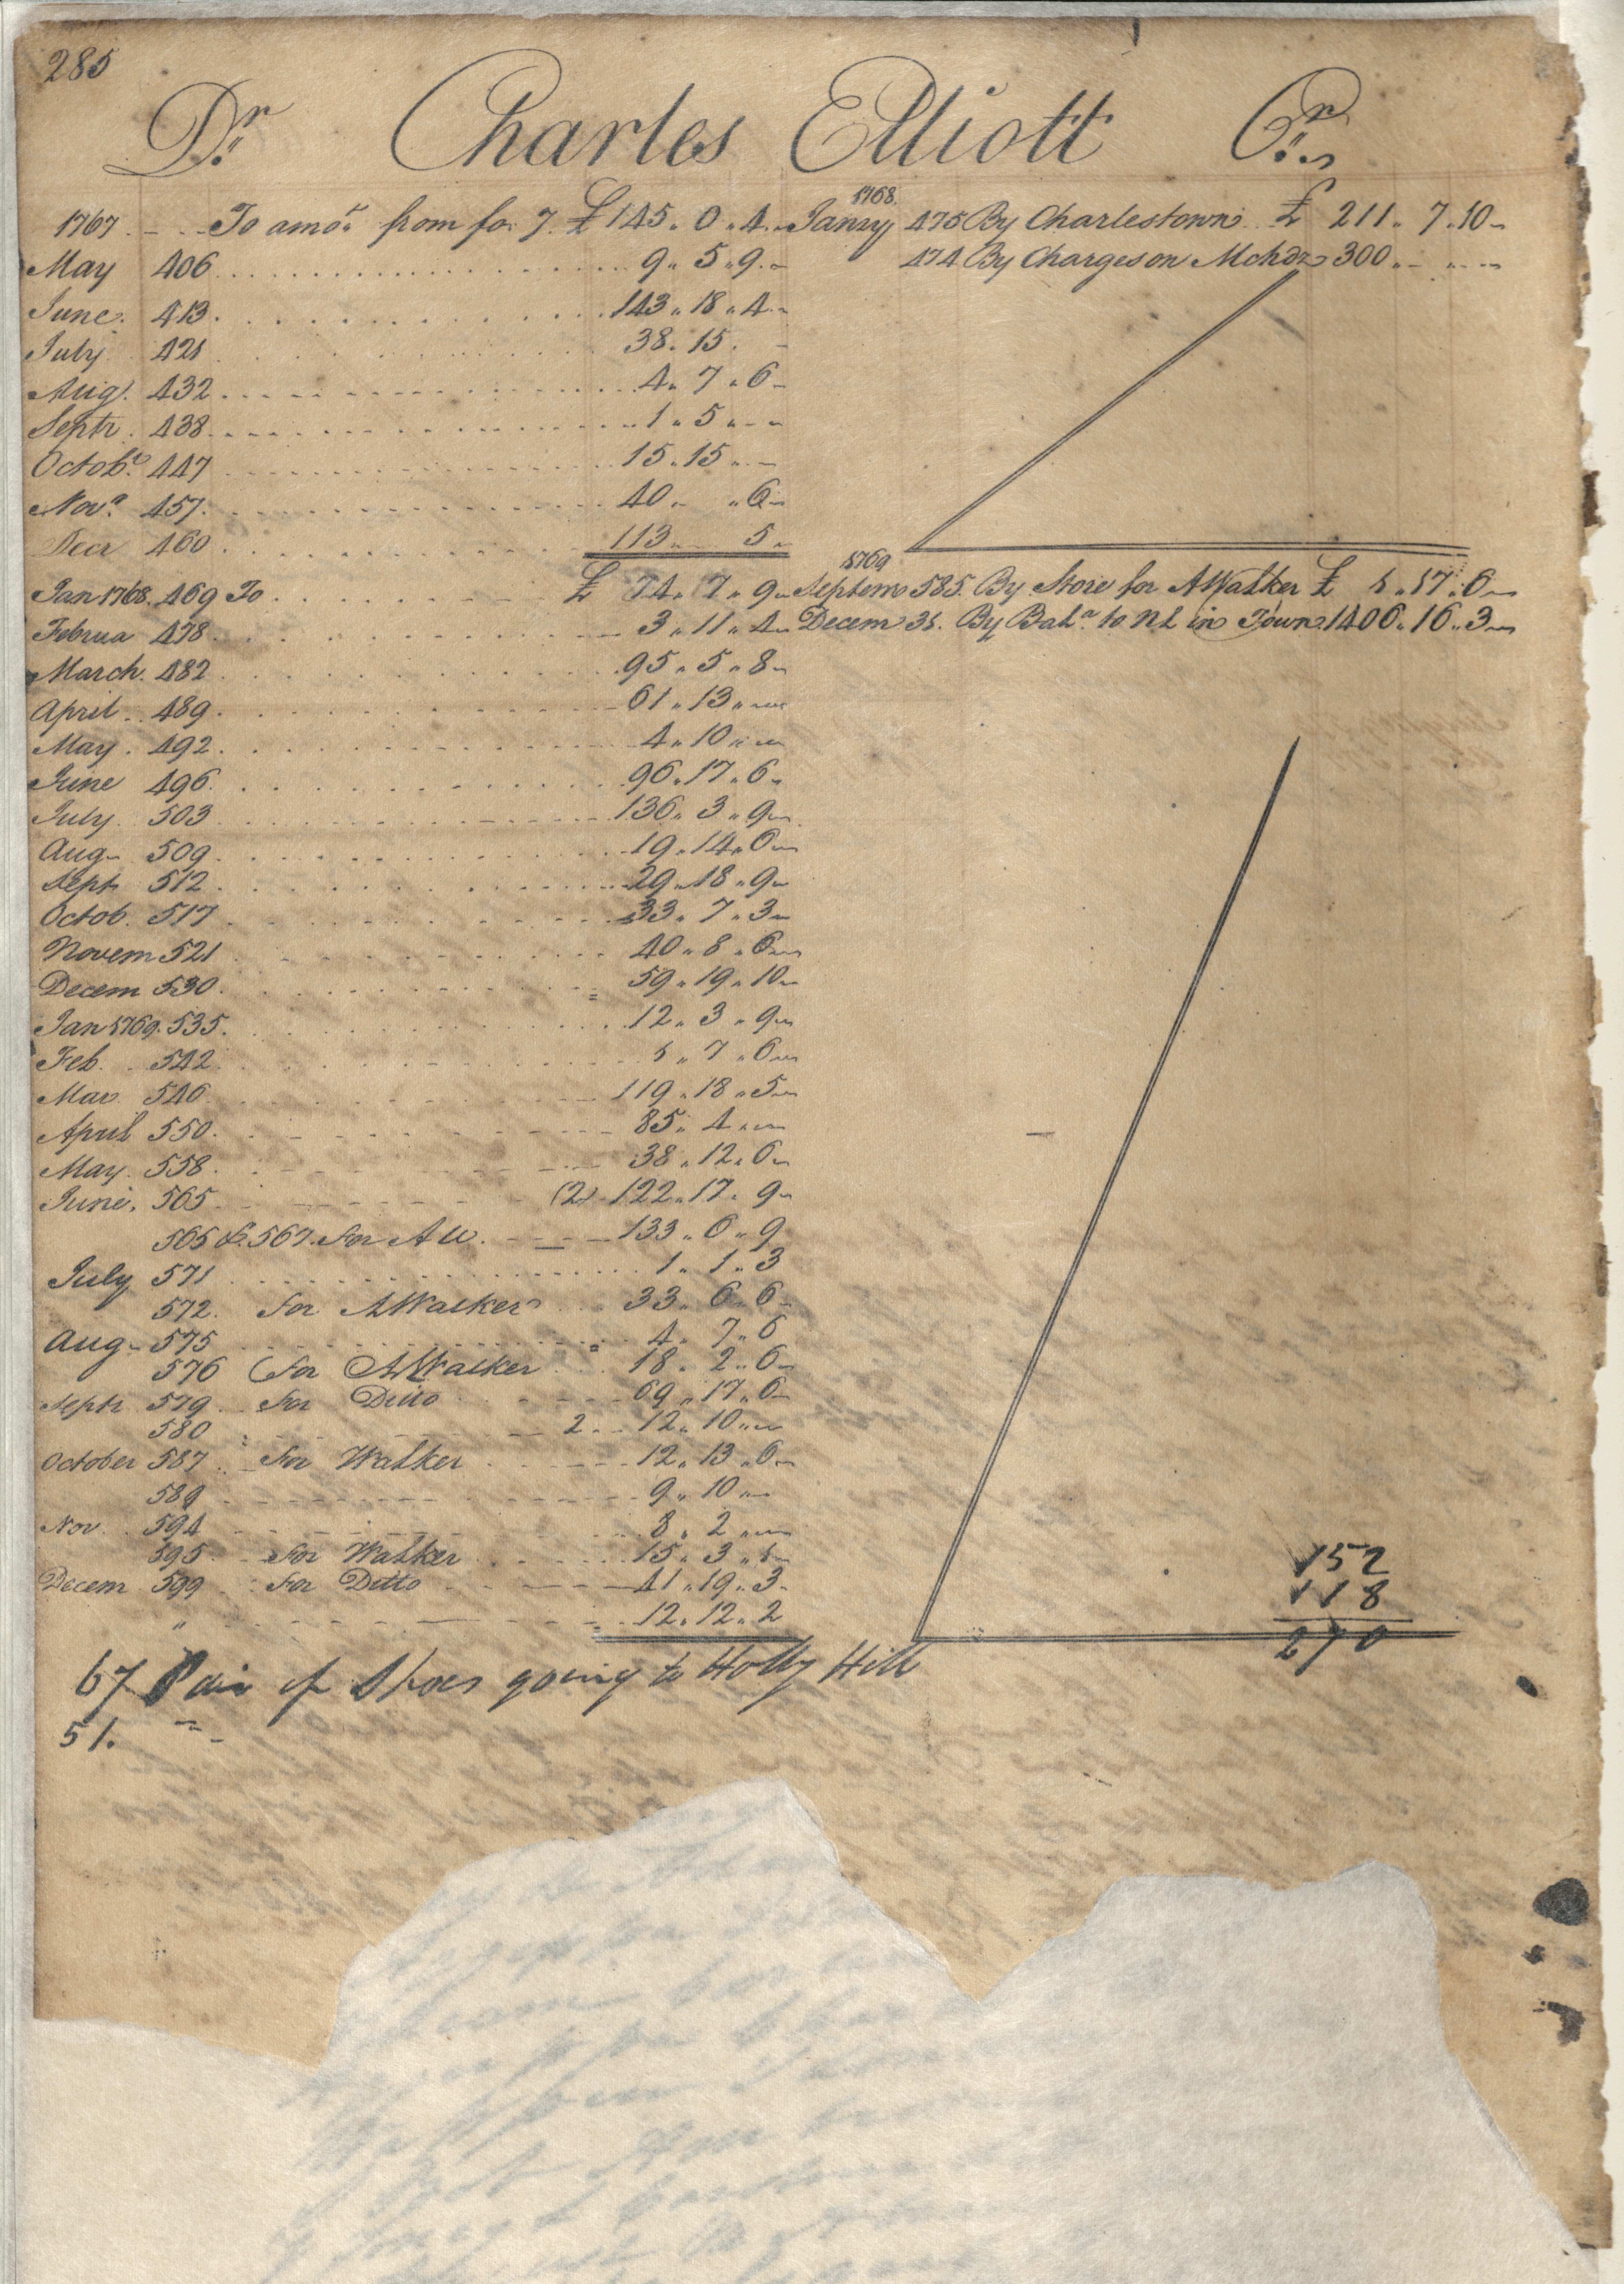 Plowden Weston's Business Ledger, page 285